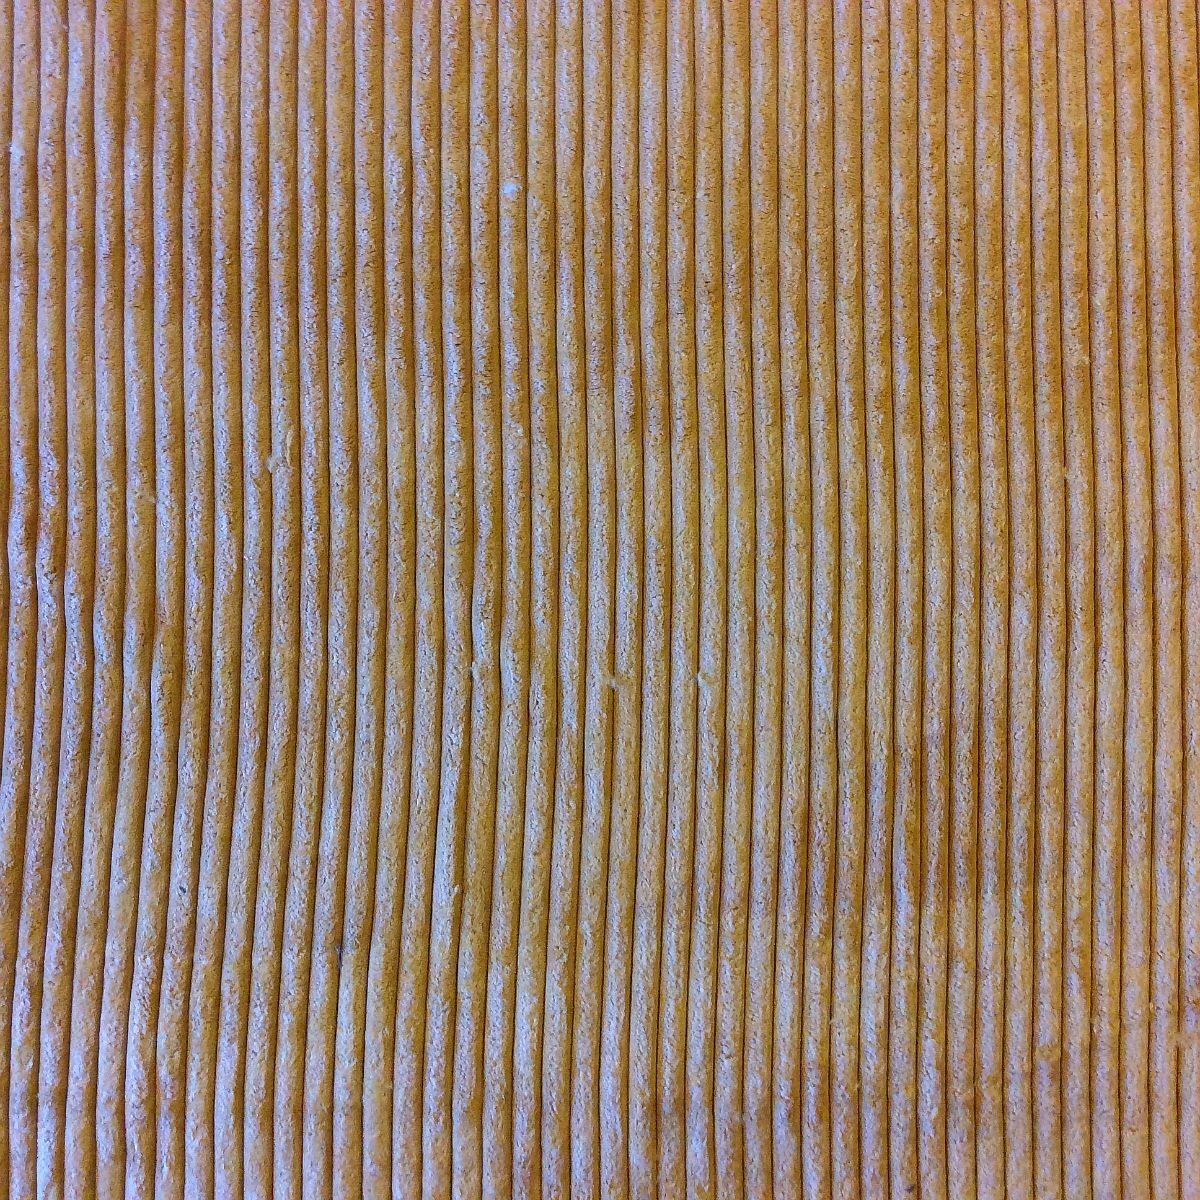 Amazing Soft Wide Rib Microfiber Gold Heavy Duty Upholstery Fabric OSRG159